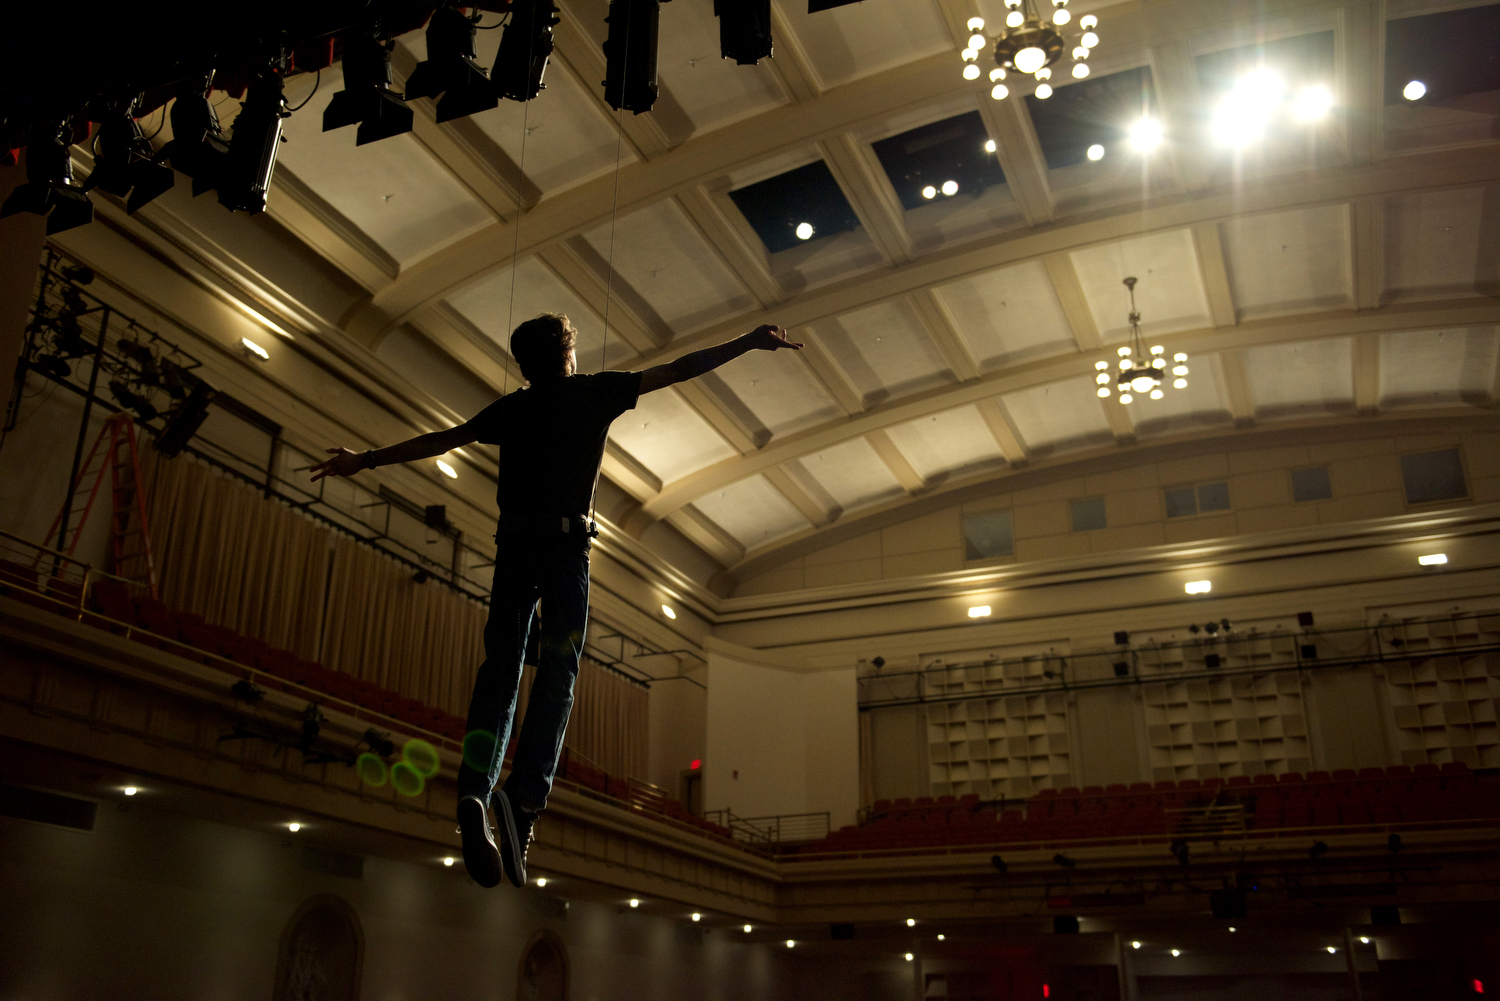 """With the help of his peers who are learning to control the flying wires offstage Greenwood High School senior Joe Moore, 17, practices soaring above the stage for the first time in Van Meter Auditorium on Monday, March 7. """"Flying was the most amazing thing,"""" Moore said of the experience. After three days of training and supervision by professionals, the students were allowed to take the ropes into their own hands. Jennifer King/HERALD"""